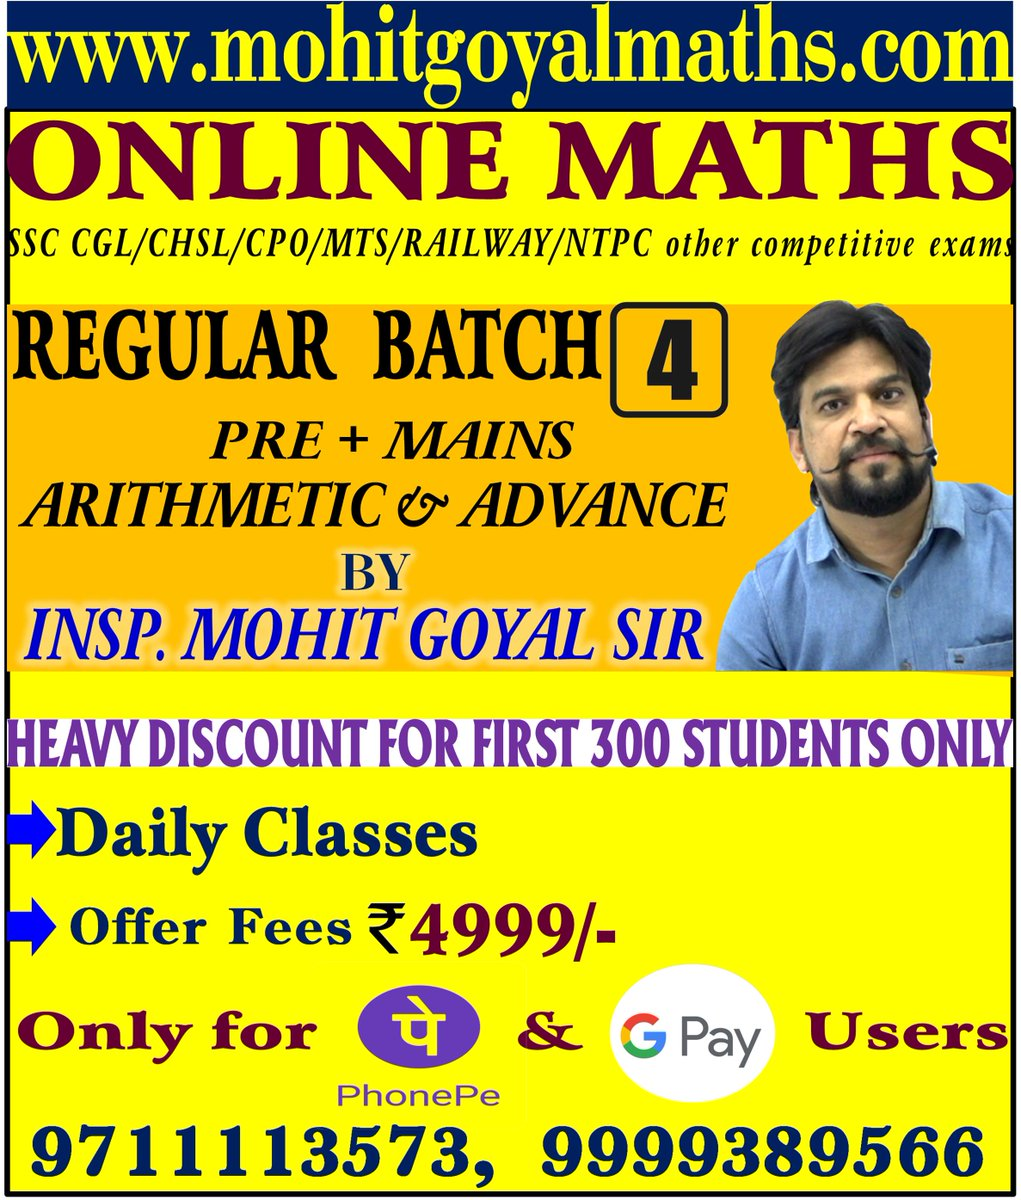 SSC Maths By Mohit Goyal Sir (@mohitgoyalmaths) | Twitter